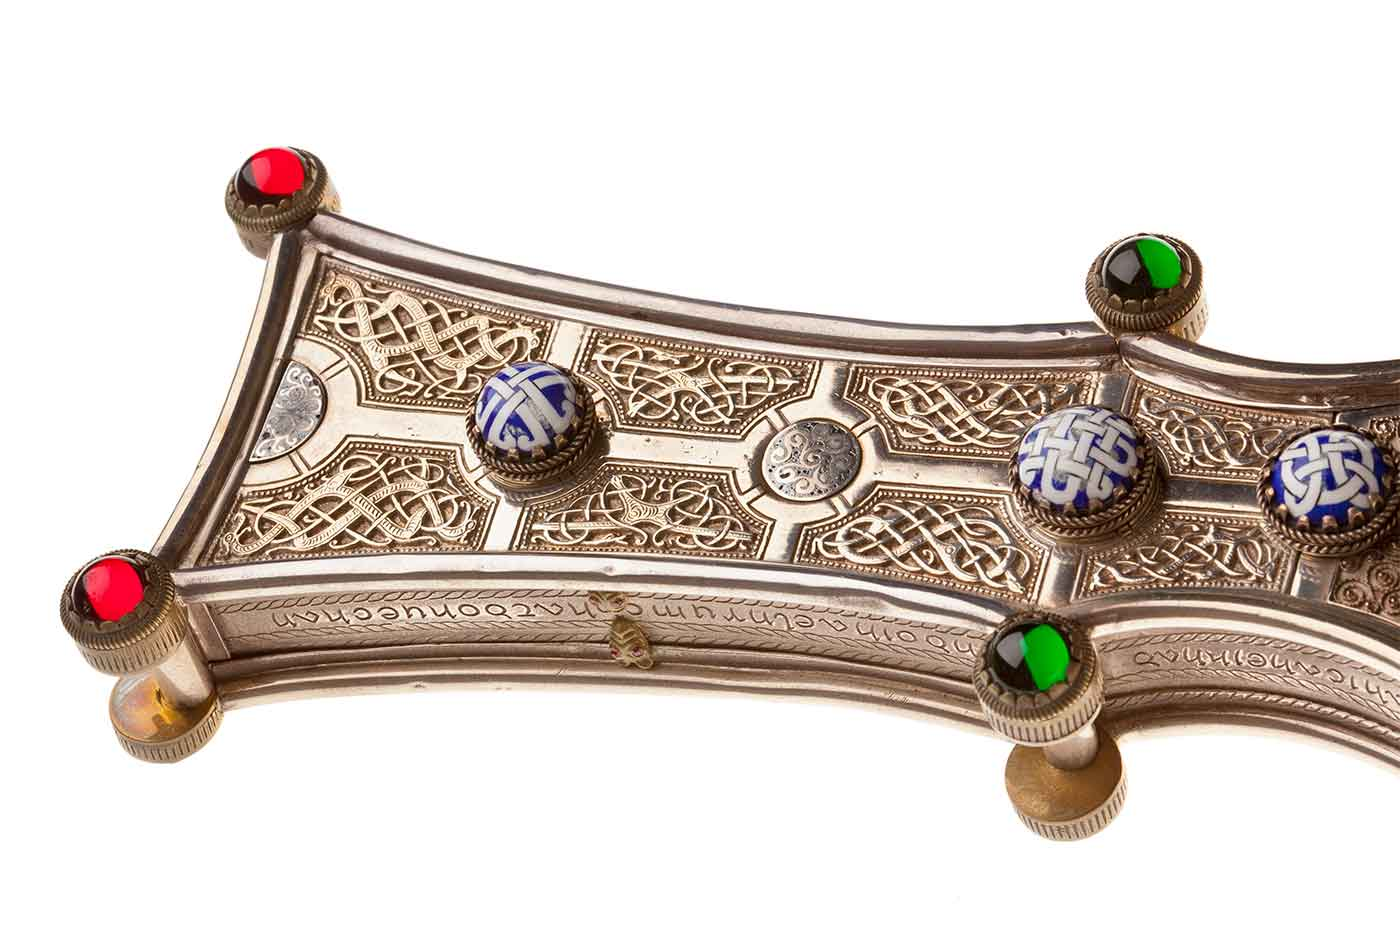 Detail of a golden cross with ornate Celtic design and gemstones. - click to view larger image